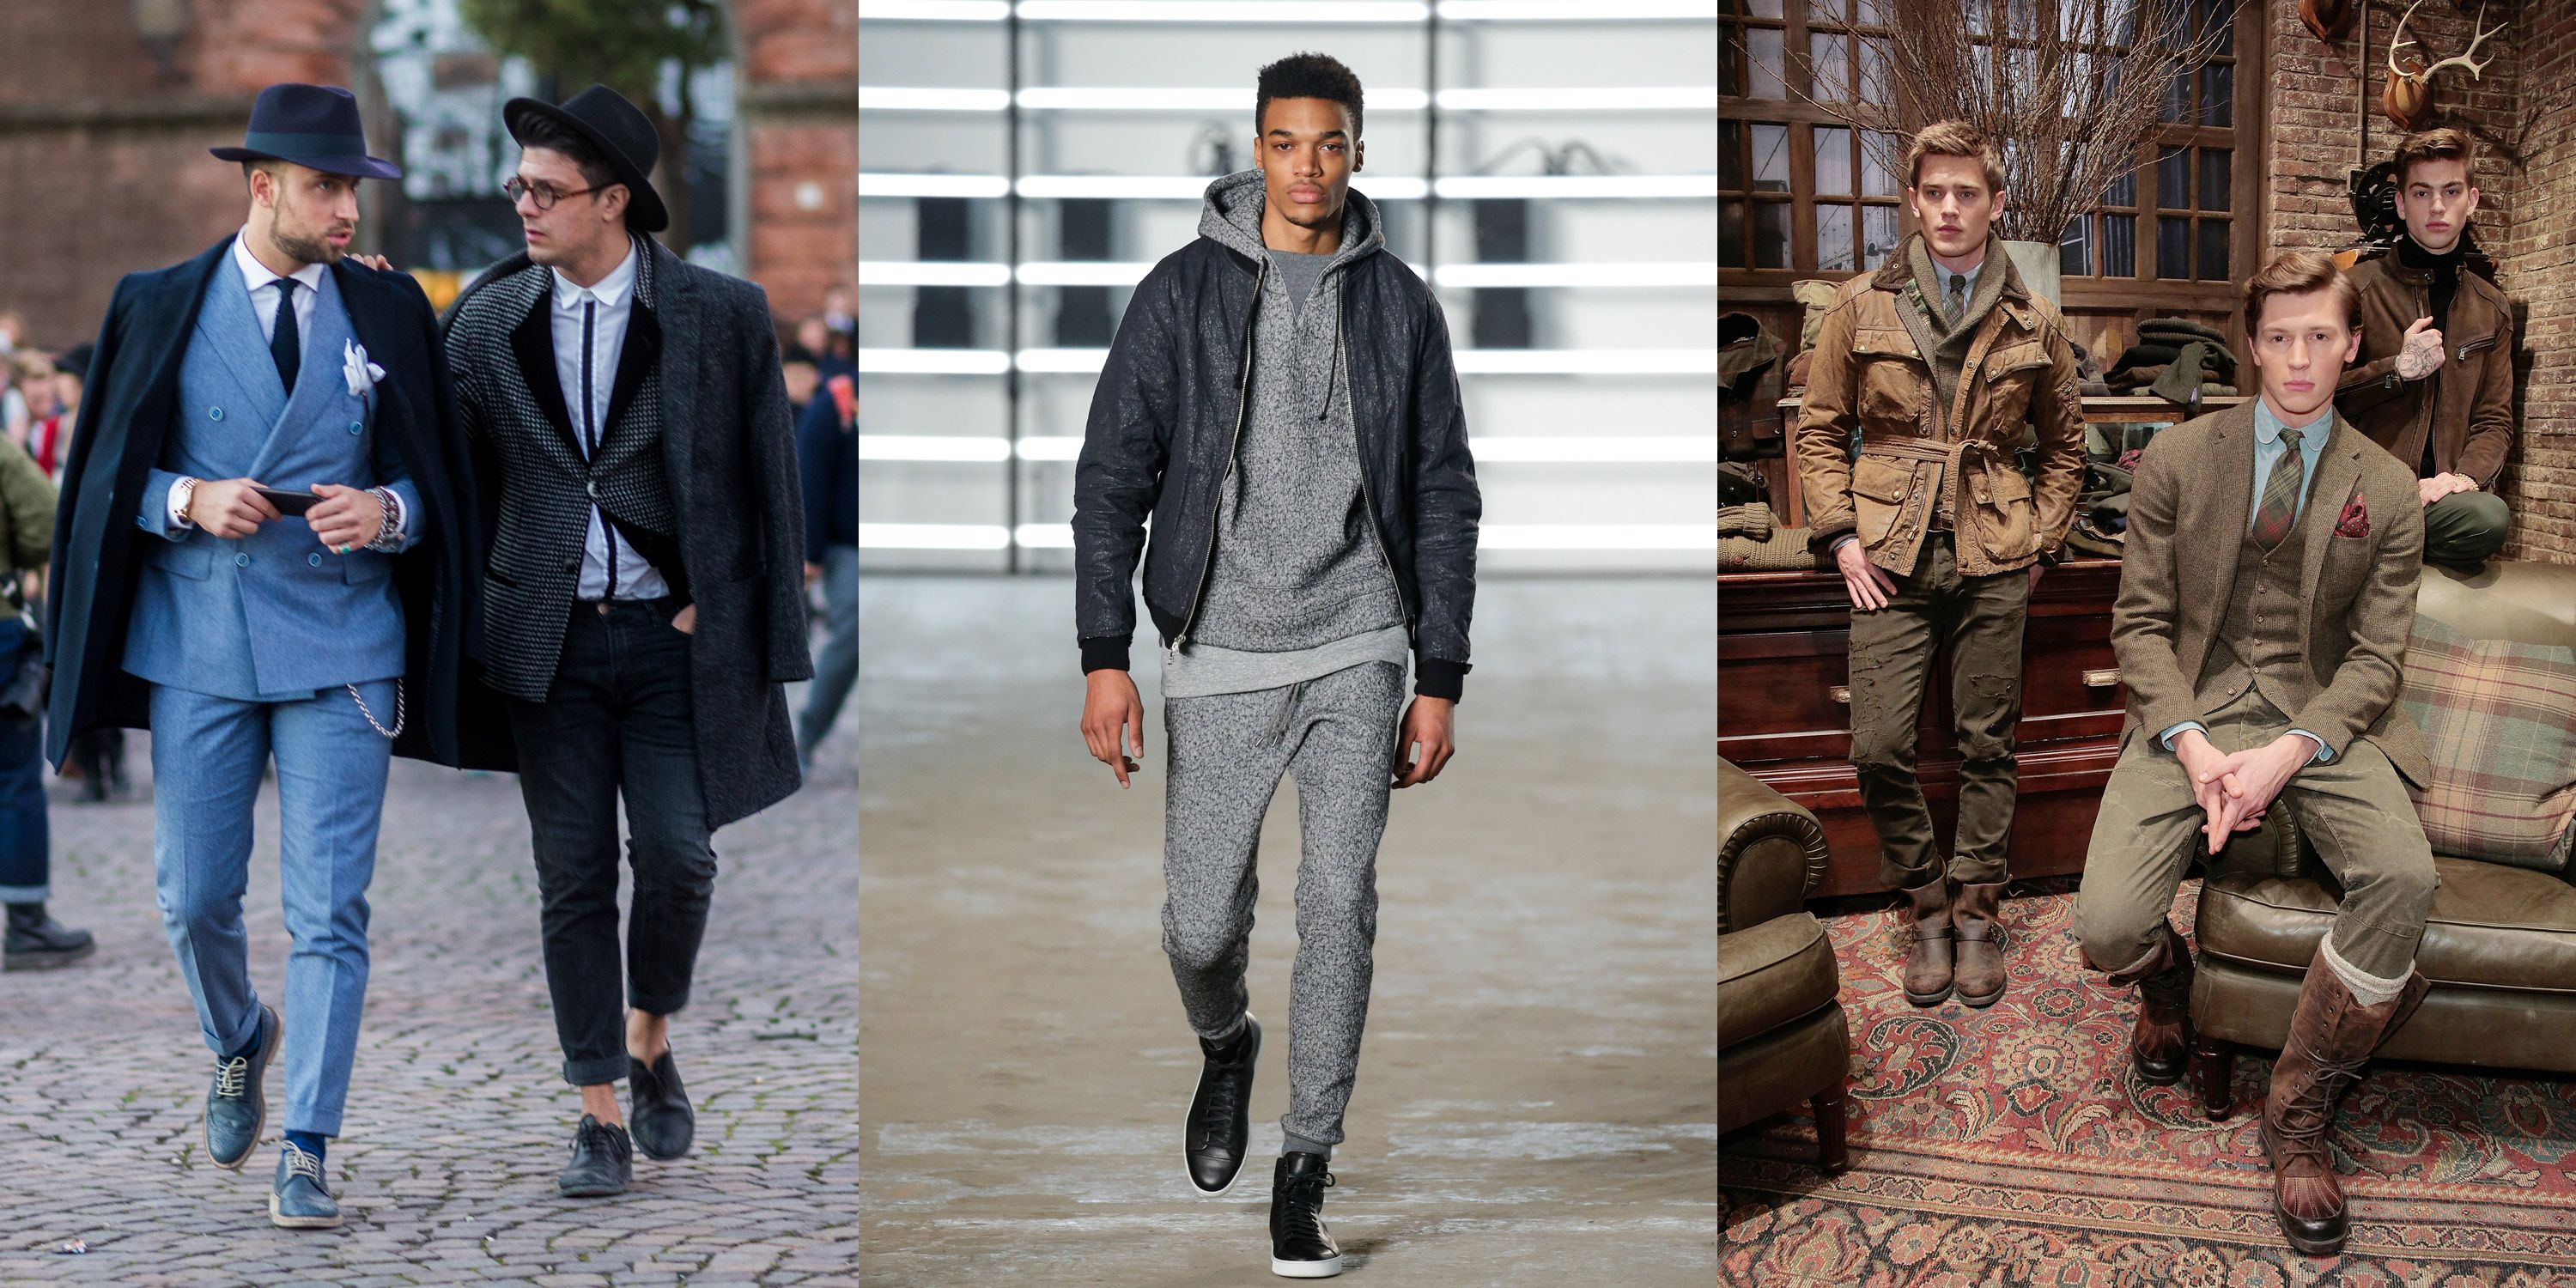 5 Menswear Pieces That Girls Look Good In 5 Menswear Pieces That Girls Look Good In new picture